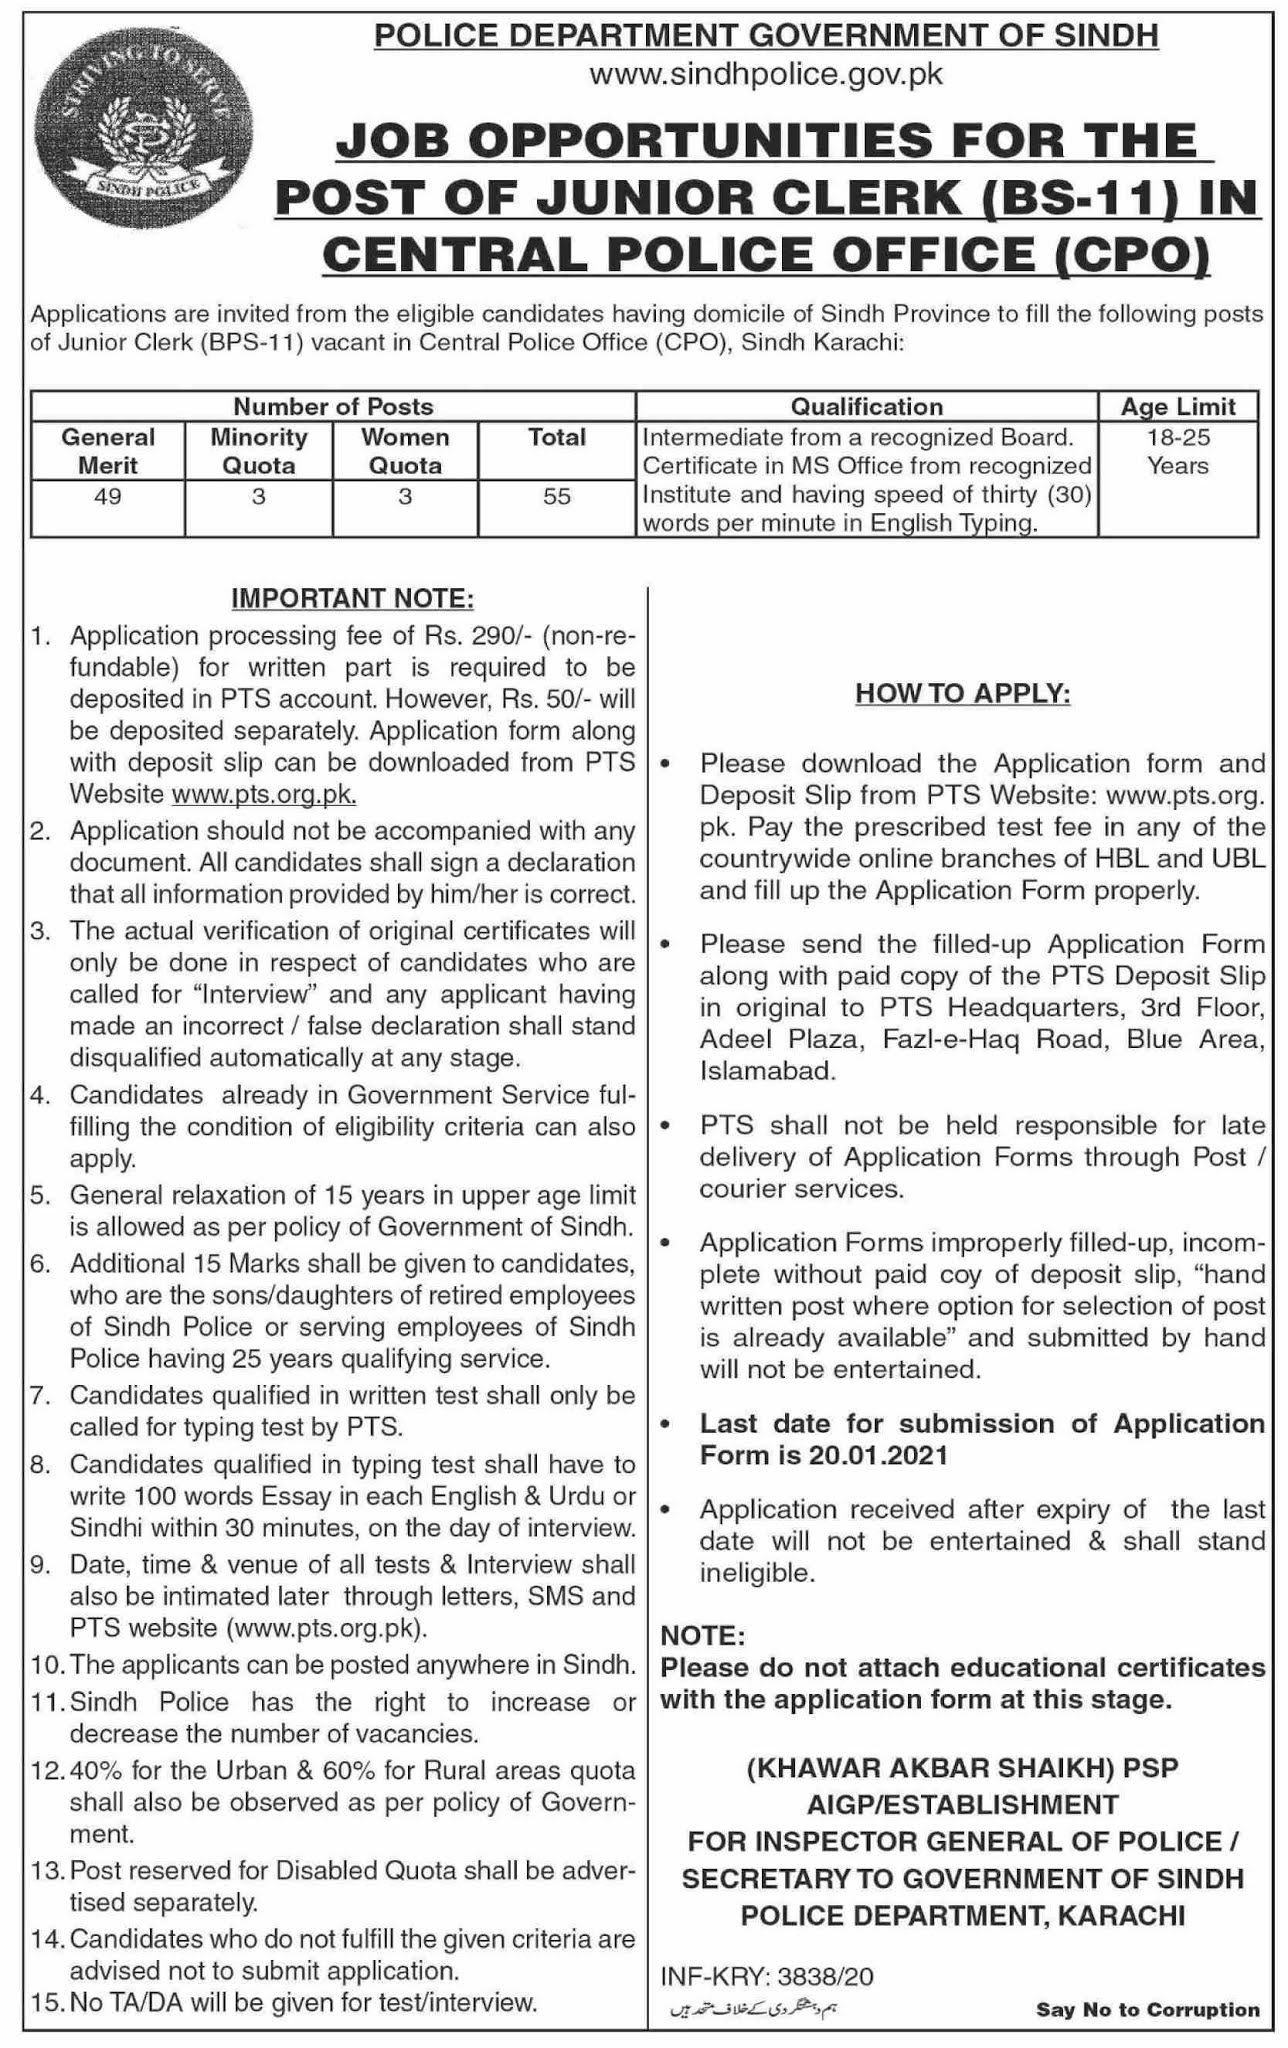 Sindh Police Jobs 2021 - Police Department Jobs 2021 - Police Station Jobs - How to become a Police Officer - How to Join the Police - How much do Police Officers Make